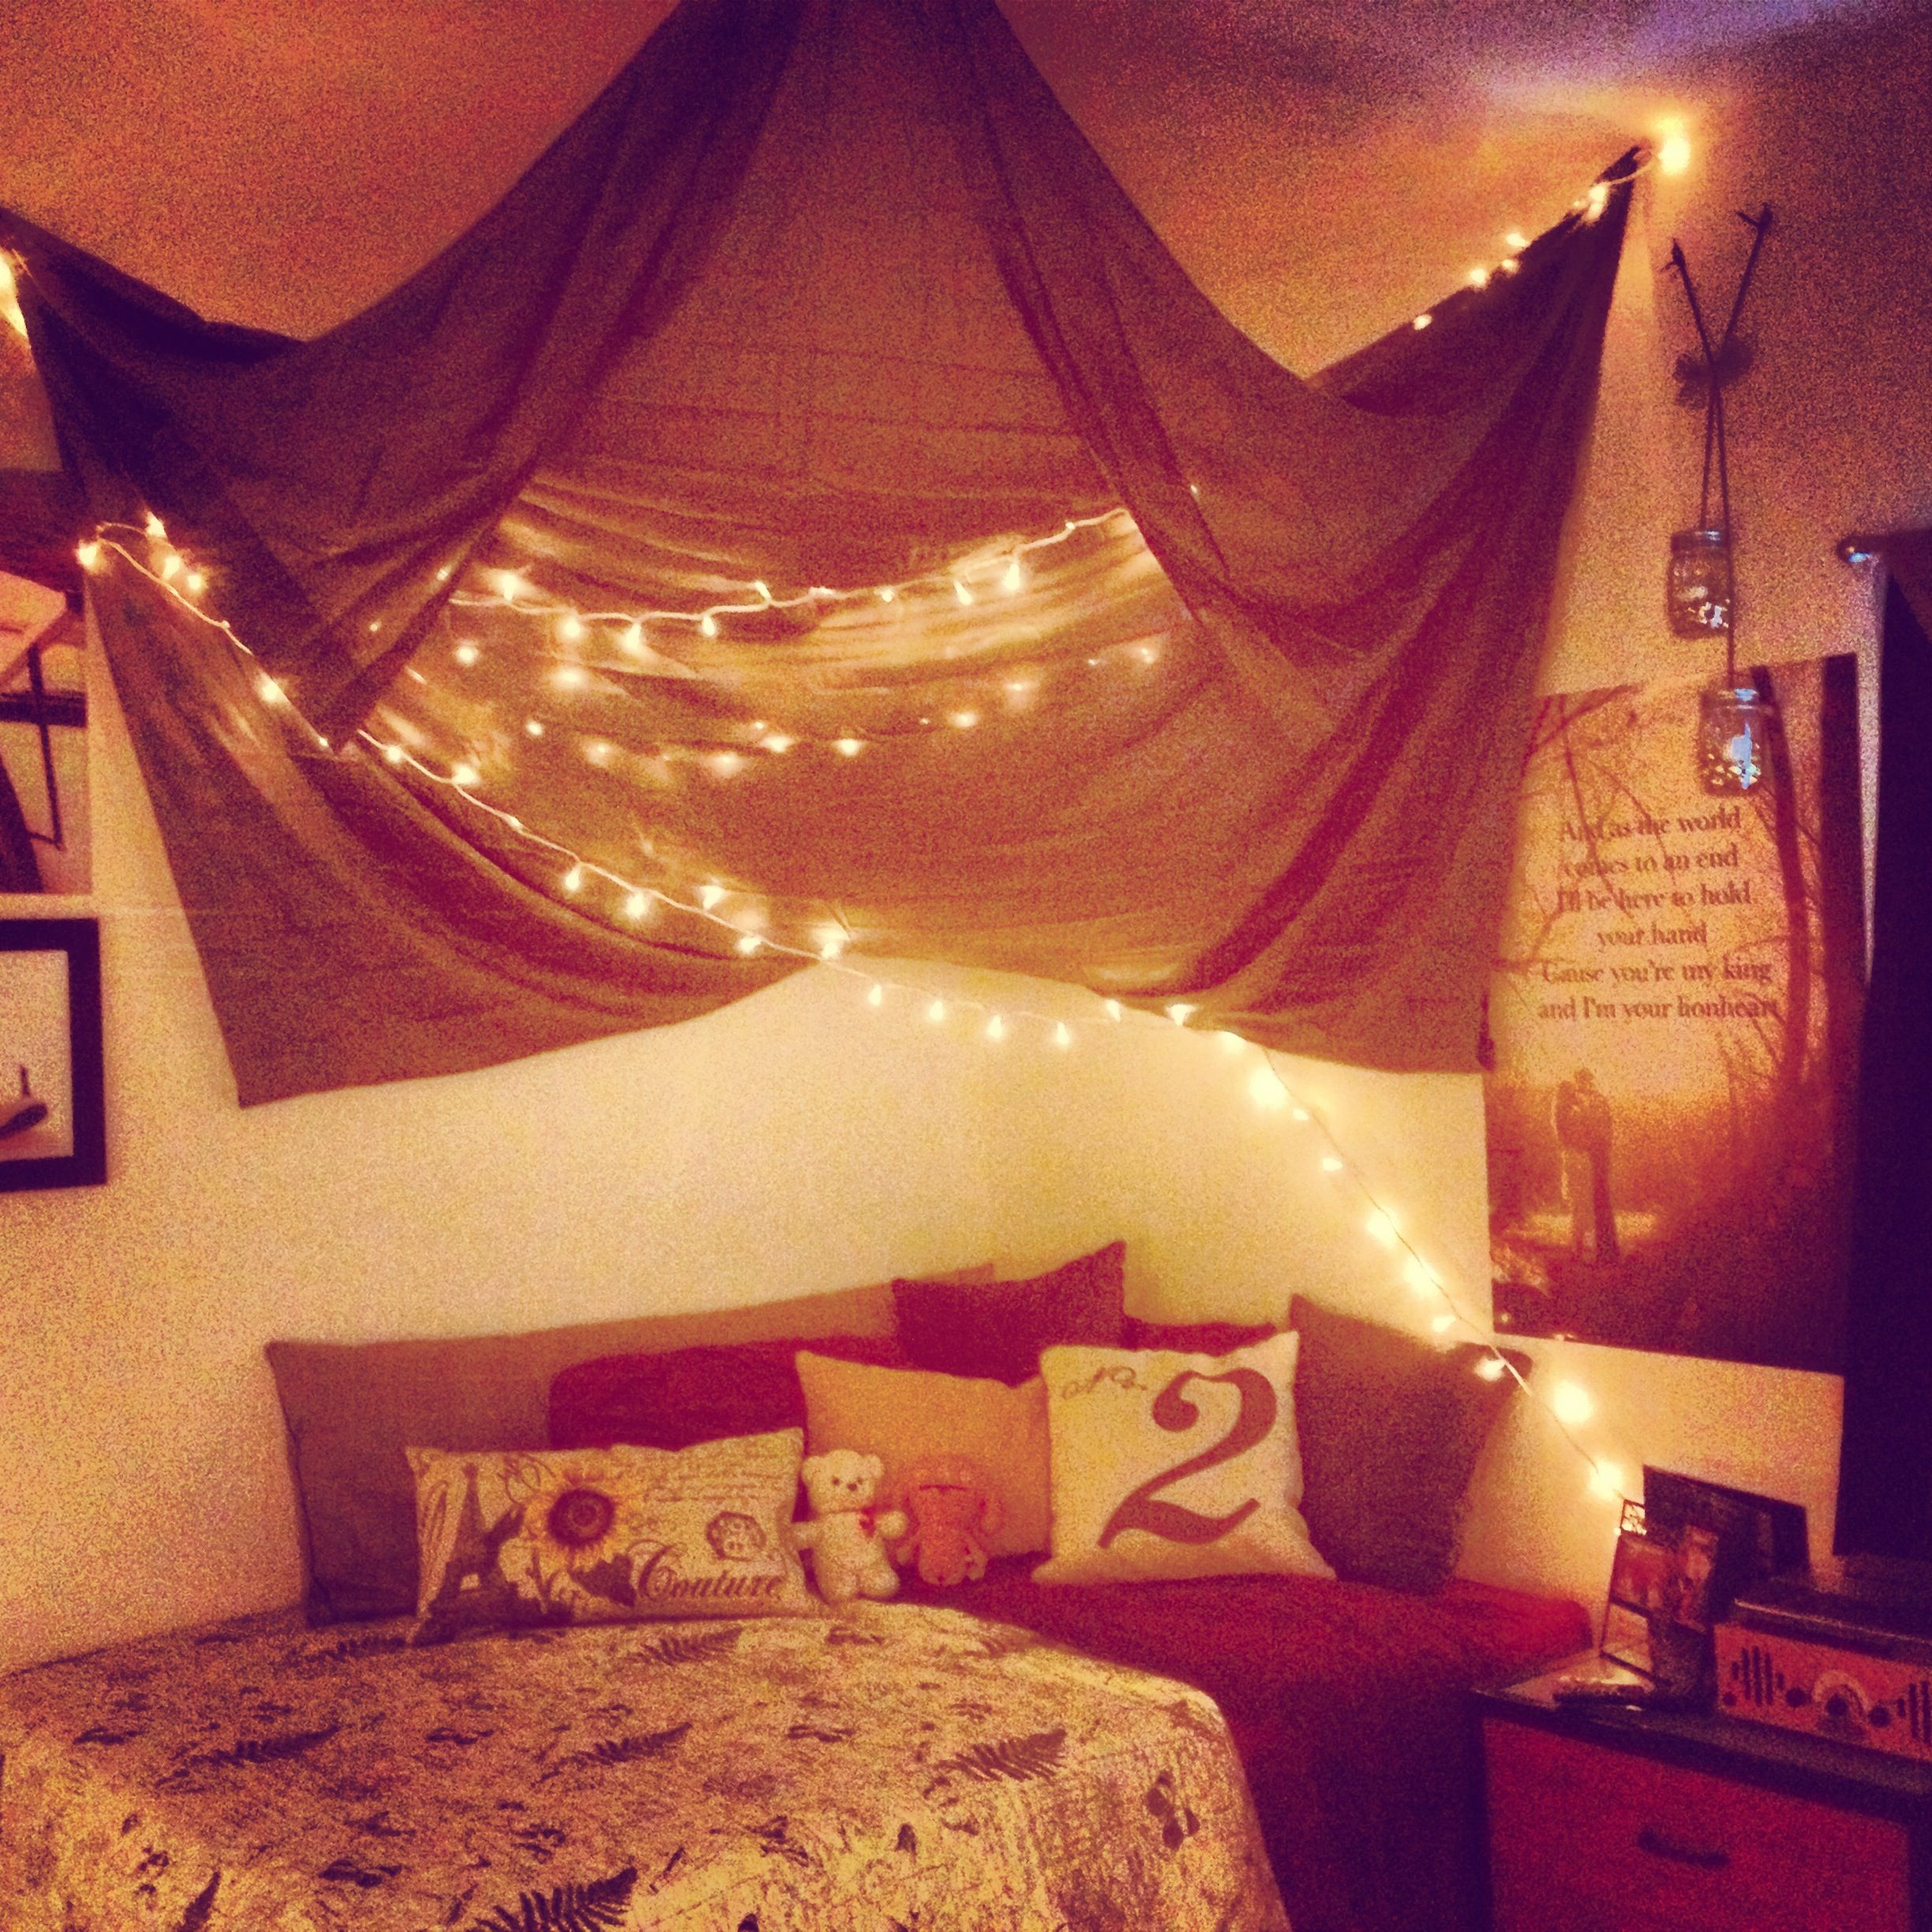 Cosy bedroom fairy lights - I Love This Bedroom What They Did With The Sheets Creating A Canopy As Well As The Fairy Lights Reminds Me Of How My Bedroom Was When I Was A Toddler